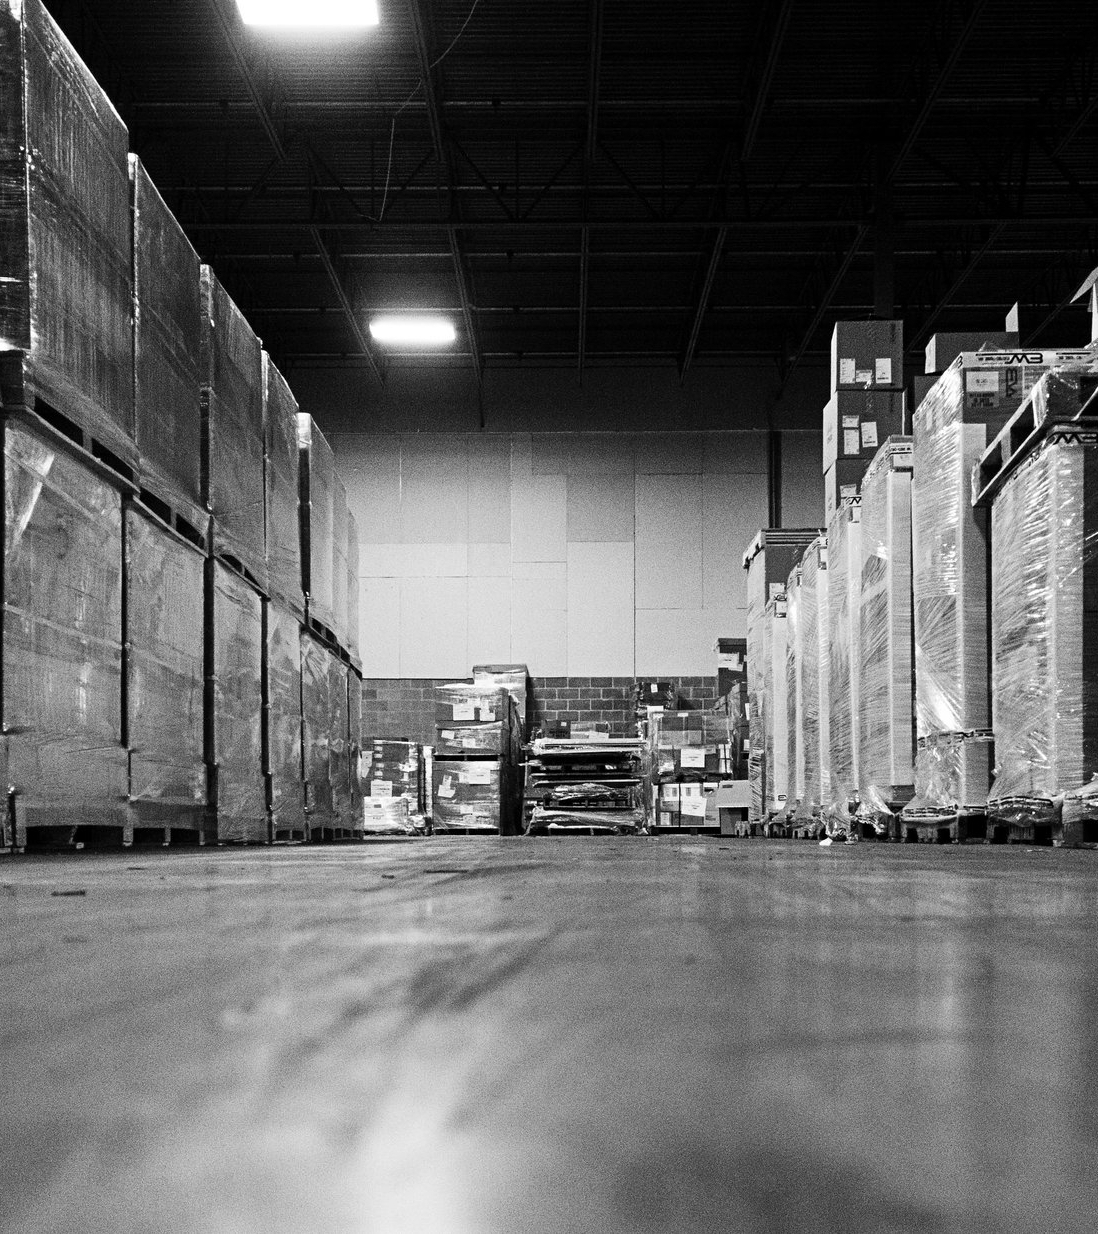 Our warehousing staff and infrastructure can help you with... - -CUSTOM FULFILLMENT-OCEAN CONTAINER UNLOADING-CROSS-DOCKING-LONG-TERM STORAGE